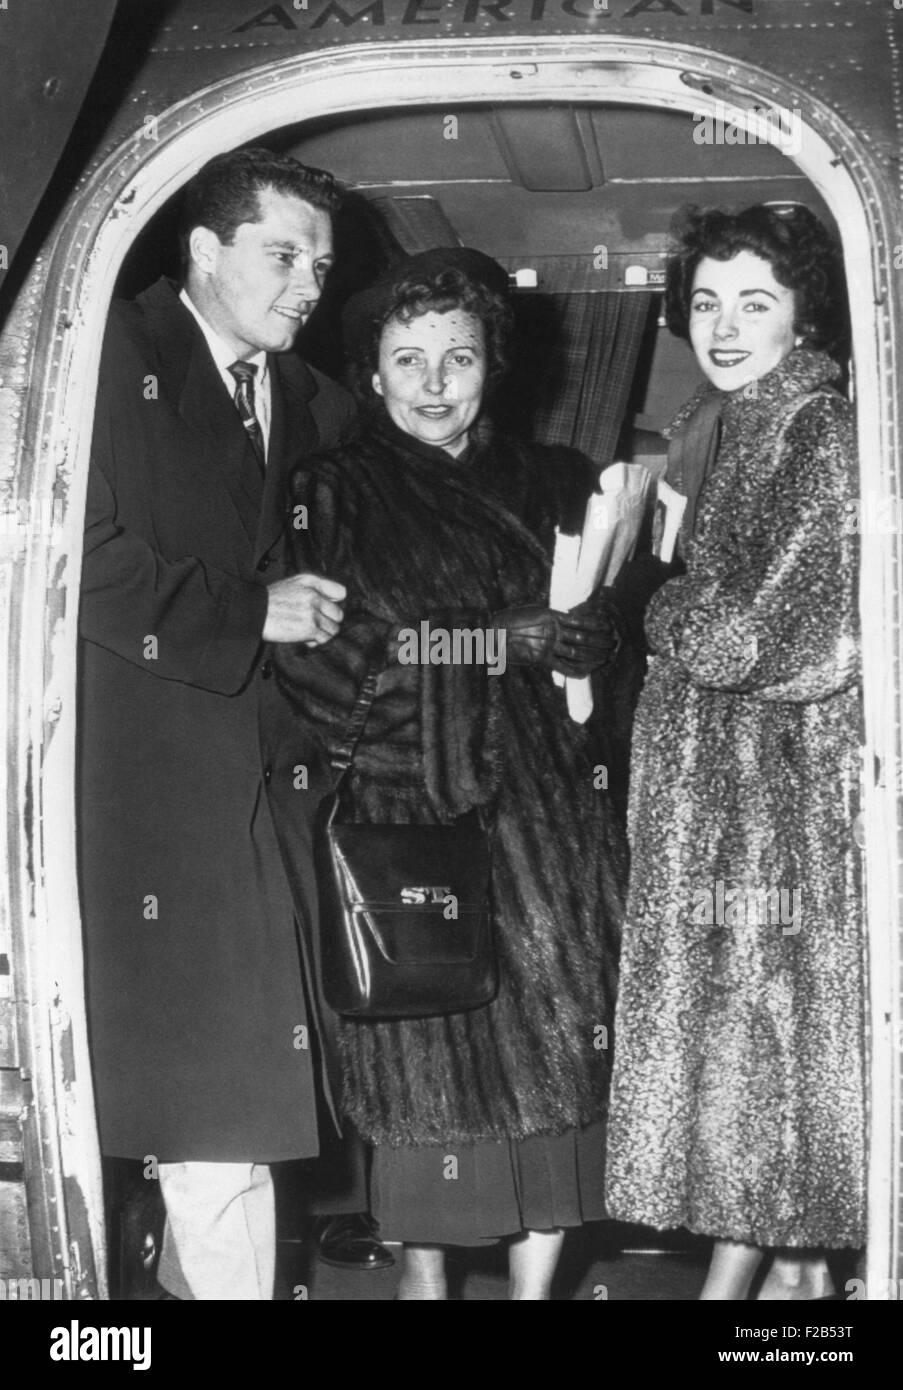 Elizabeth Taylor (right) and her fiance, Nicky Hilton Jr. arrive in Chicago with her mother. March 2, 1950. - (BSLOC - Stock Image